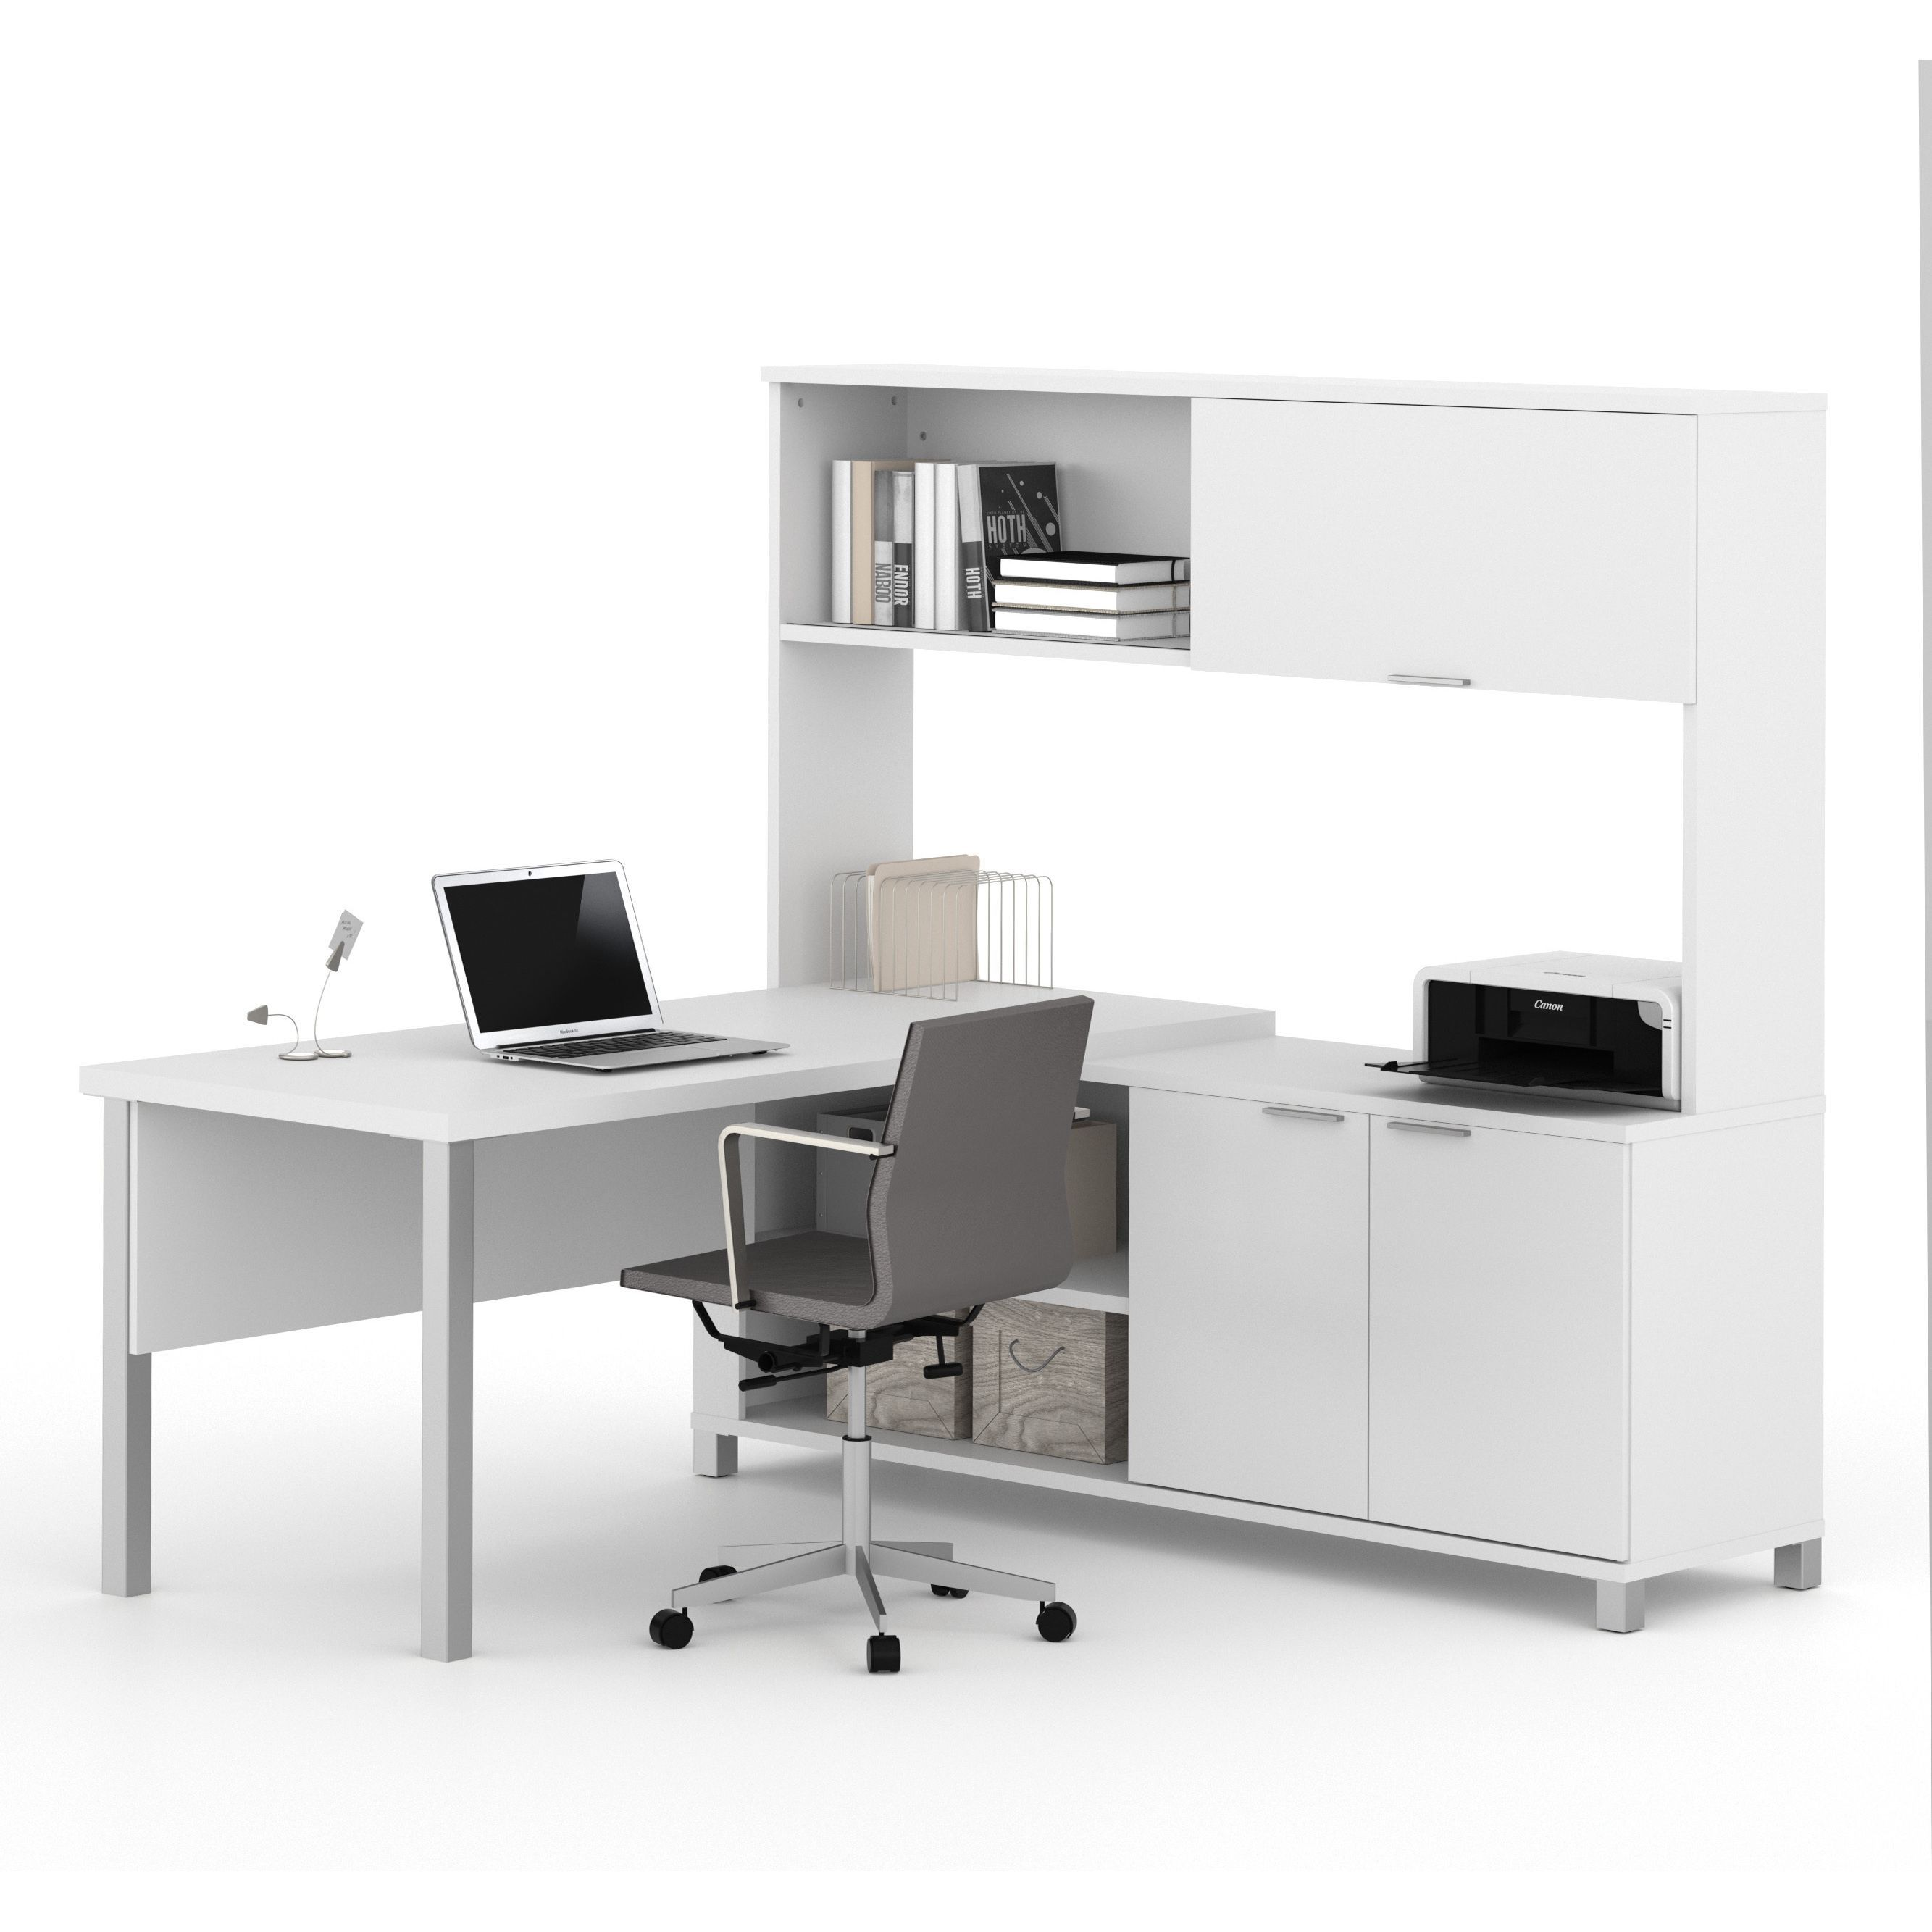 Bestar Pro-Linea L-Desk with Hutch | Products | Pinterest | Desks ...